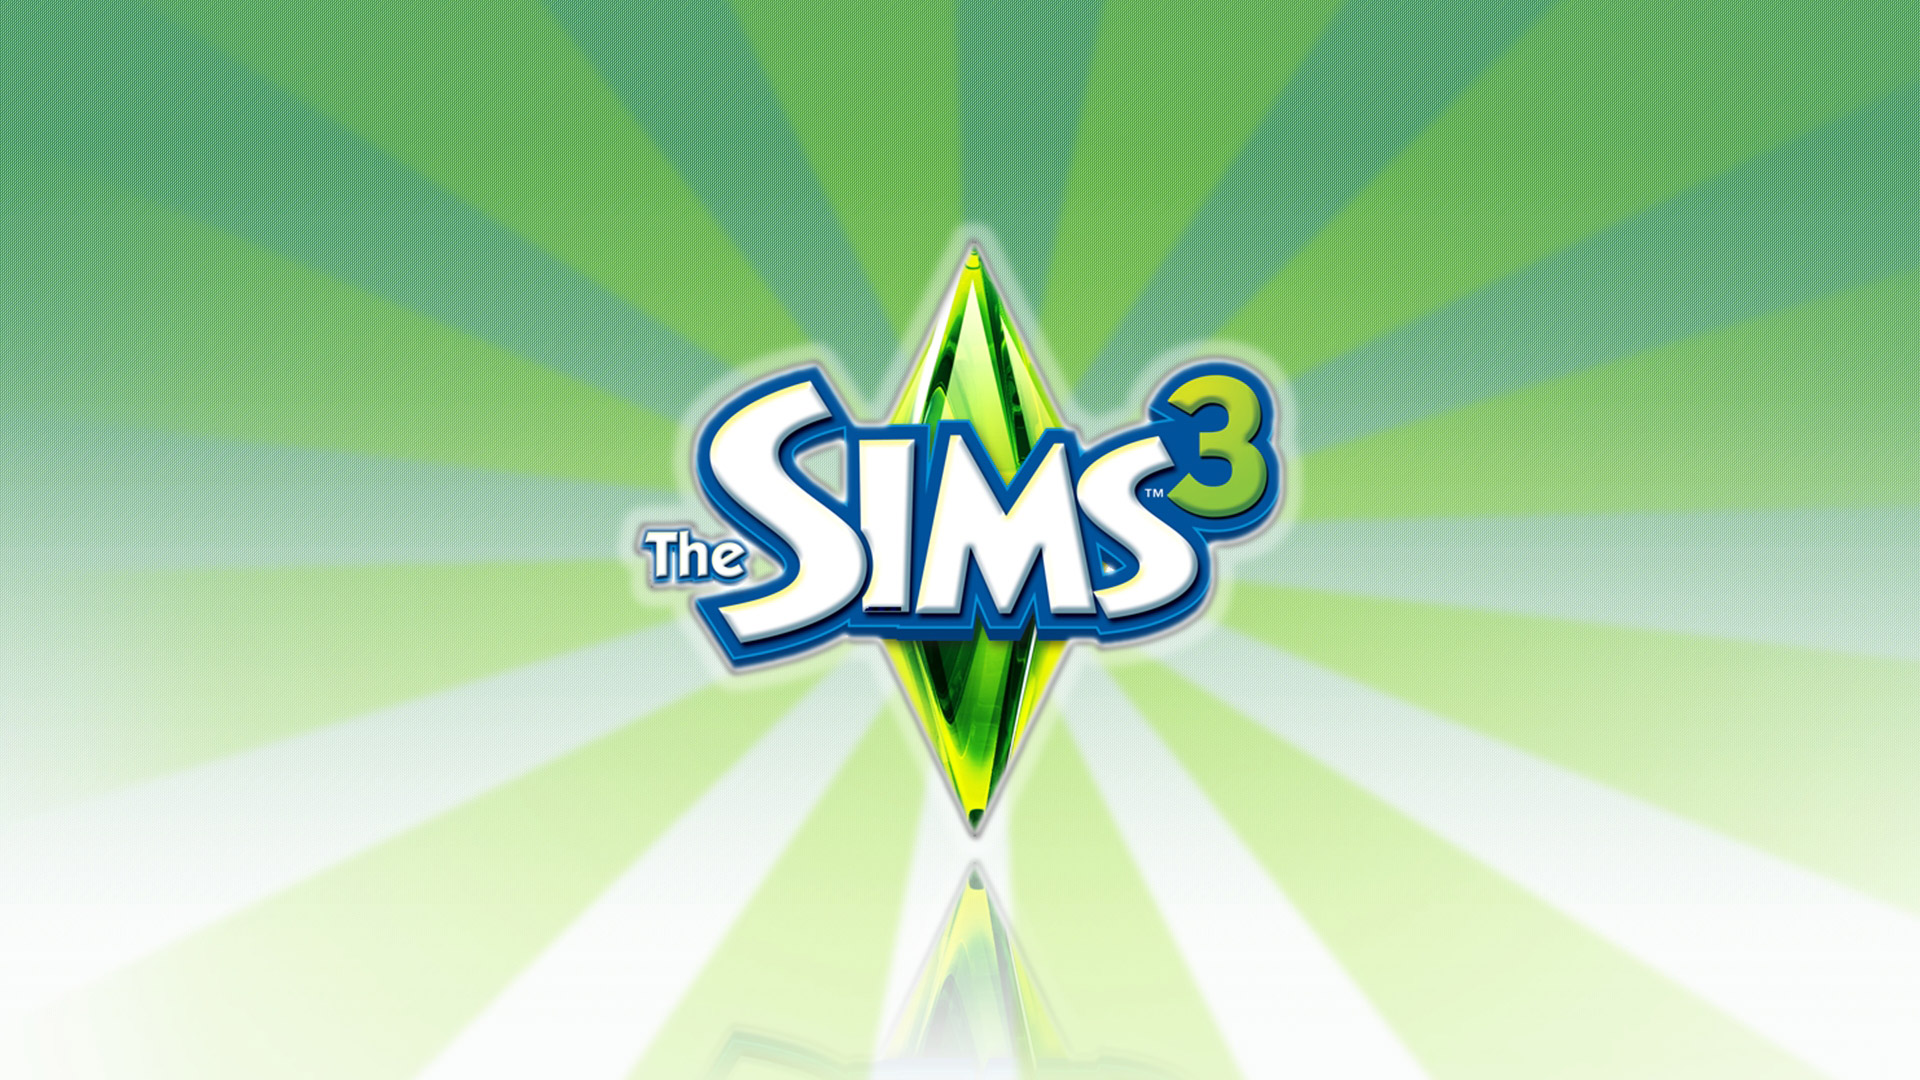 Free The Sims 3 Wallpaper in 1920x1080